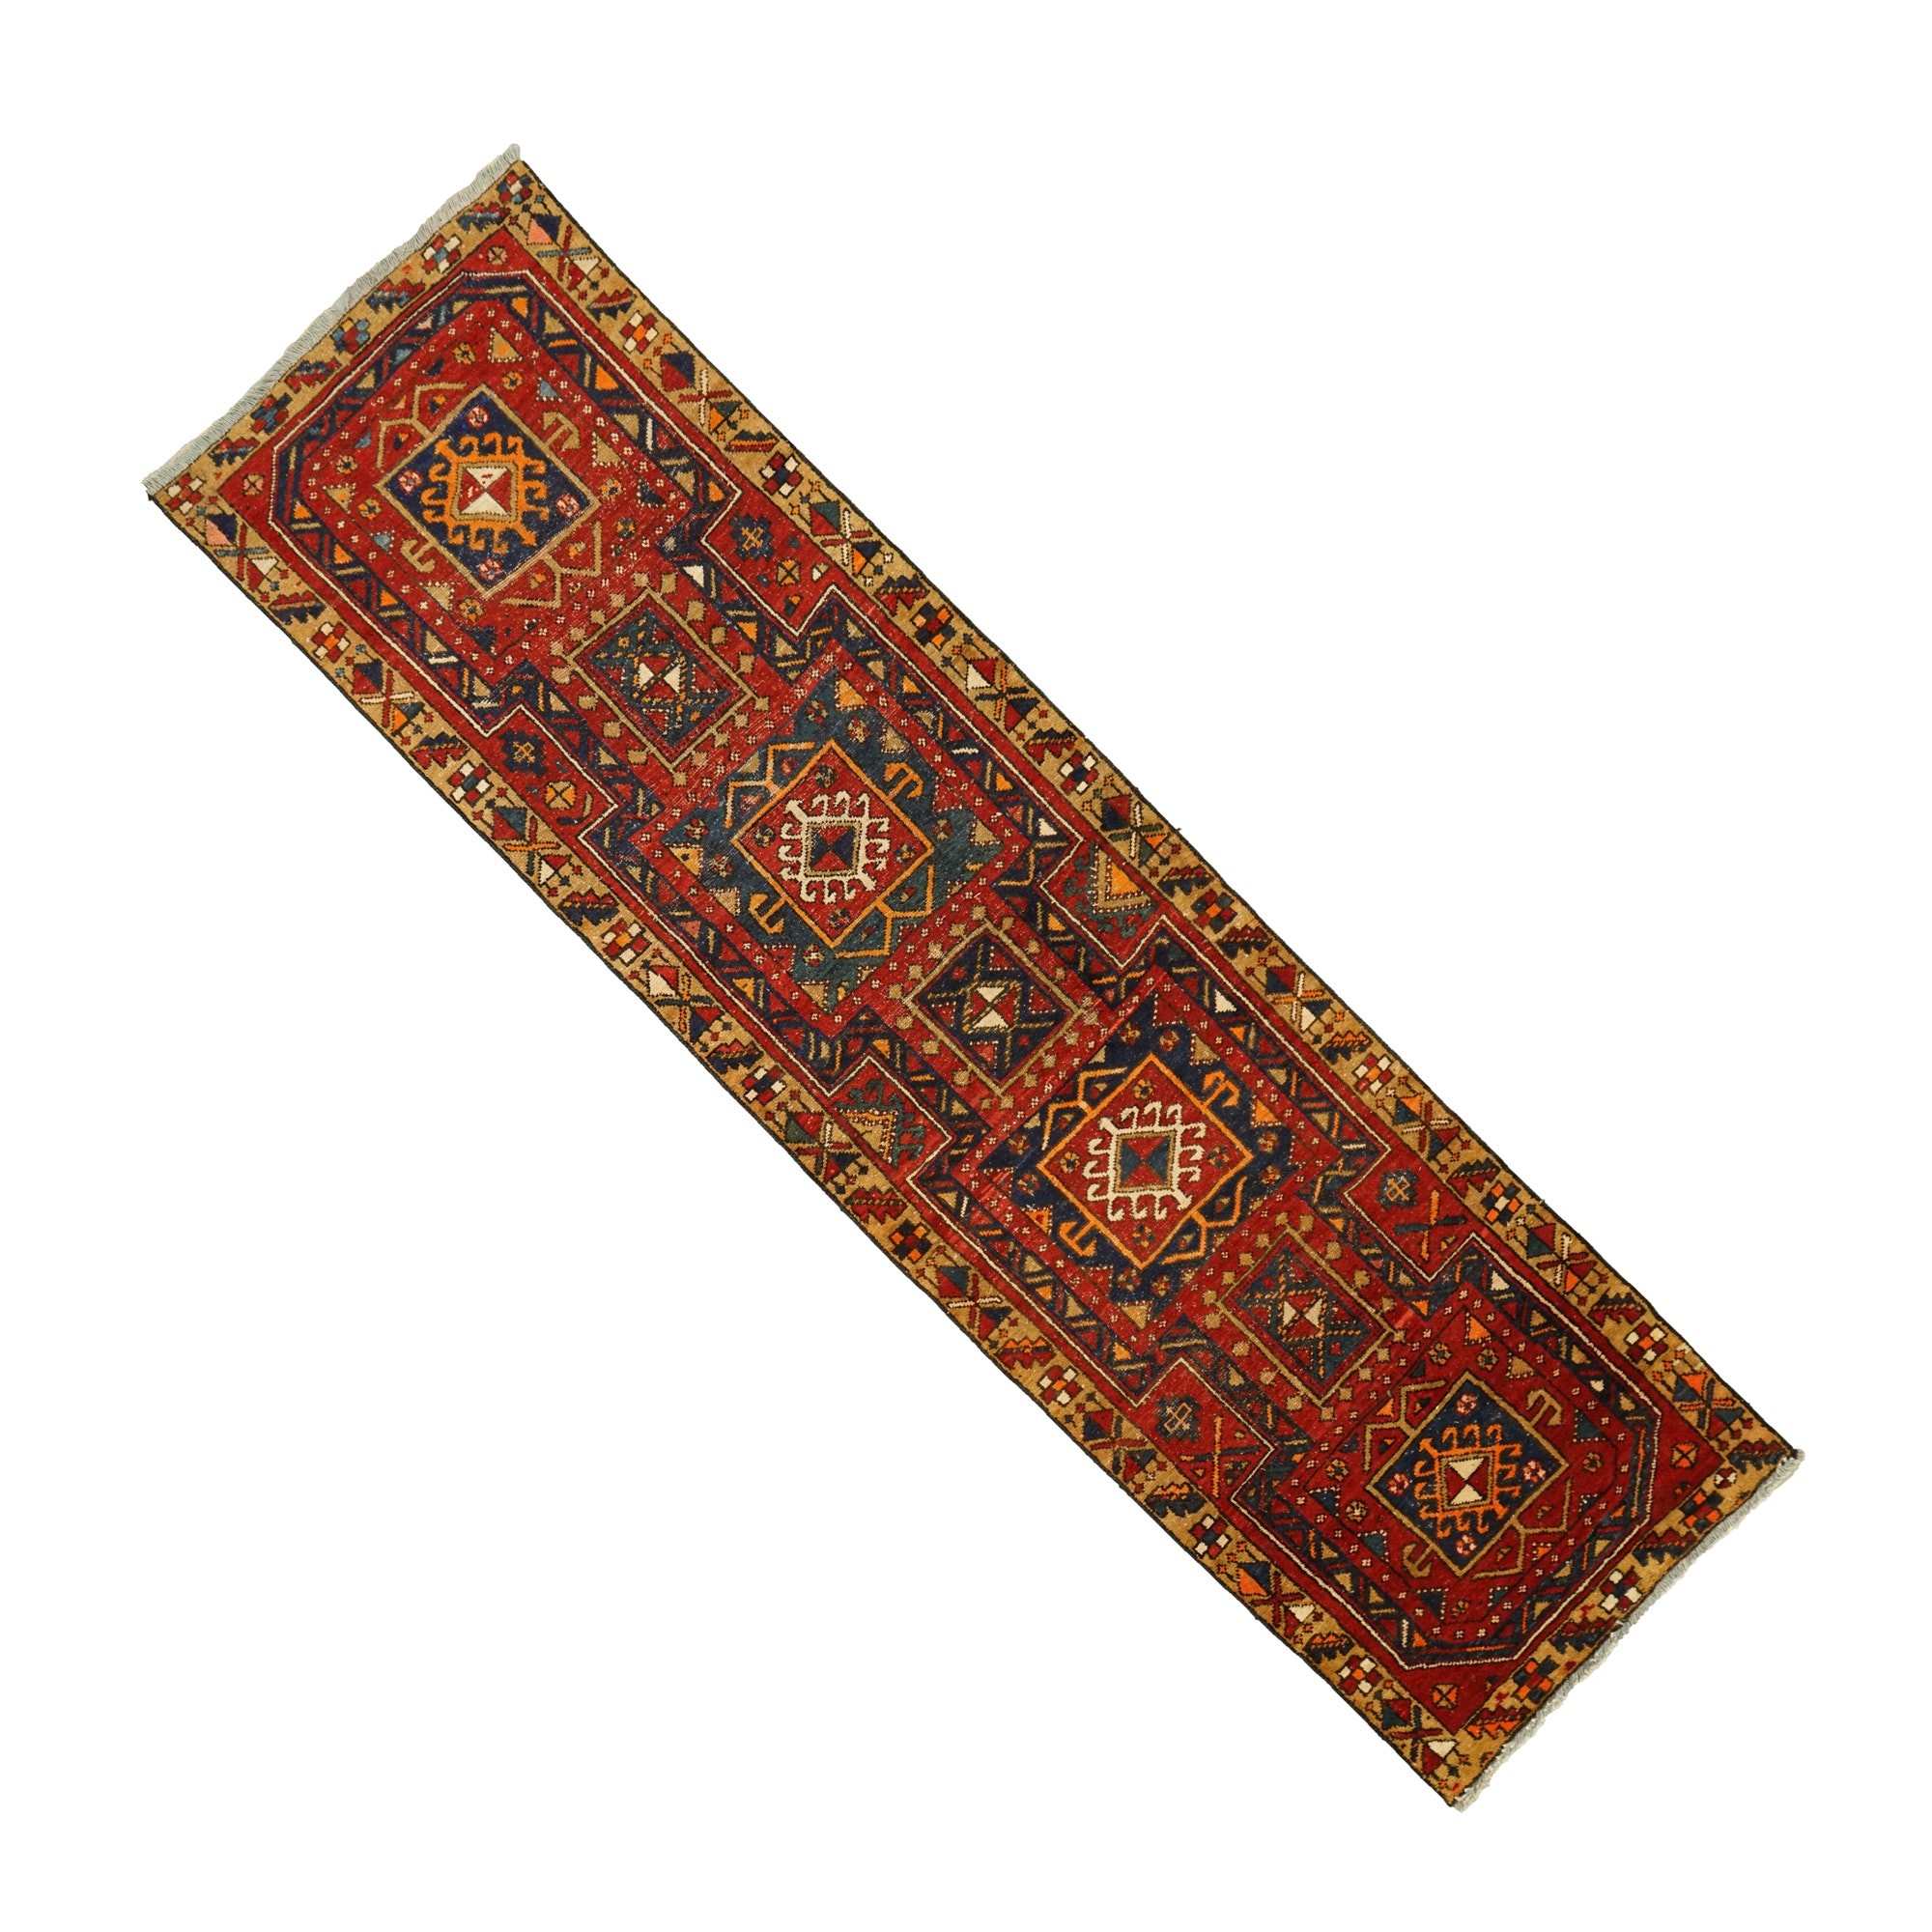 Hand-Knotted Caucasian Wool Carpet Runner